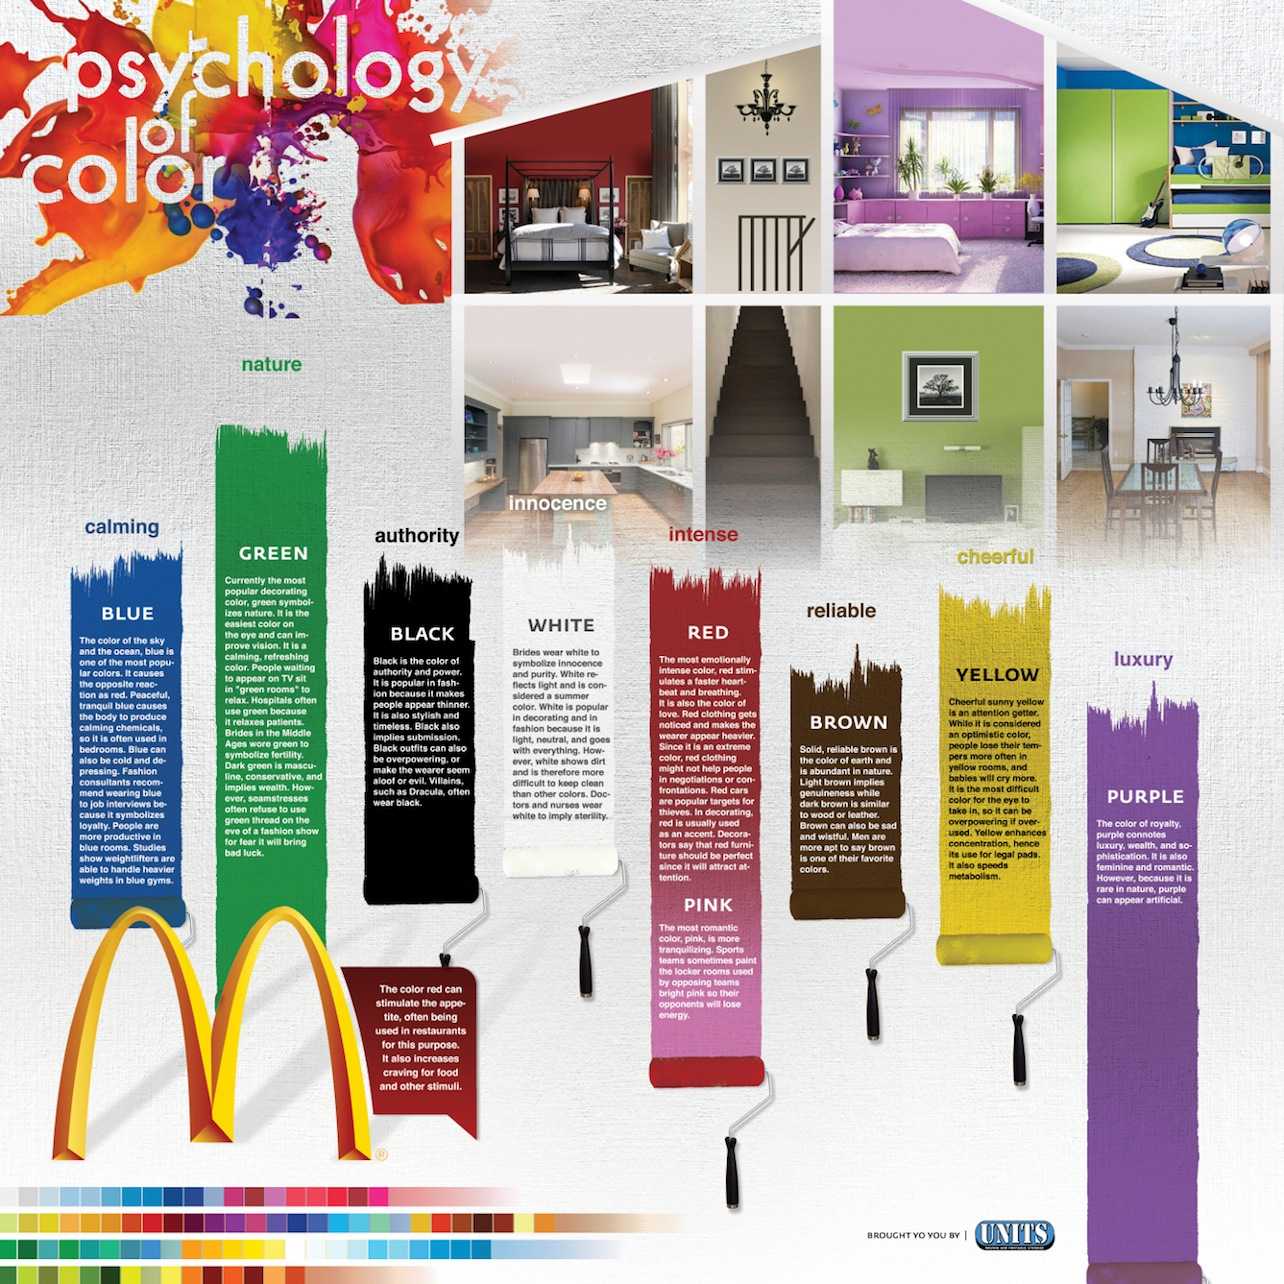 the psychology of color chris beck elephant journal